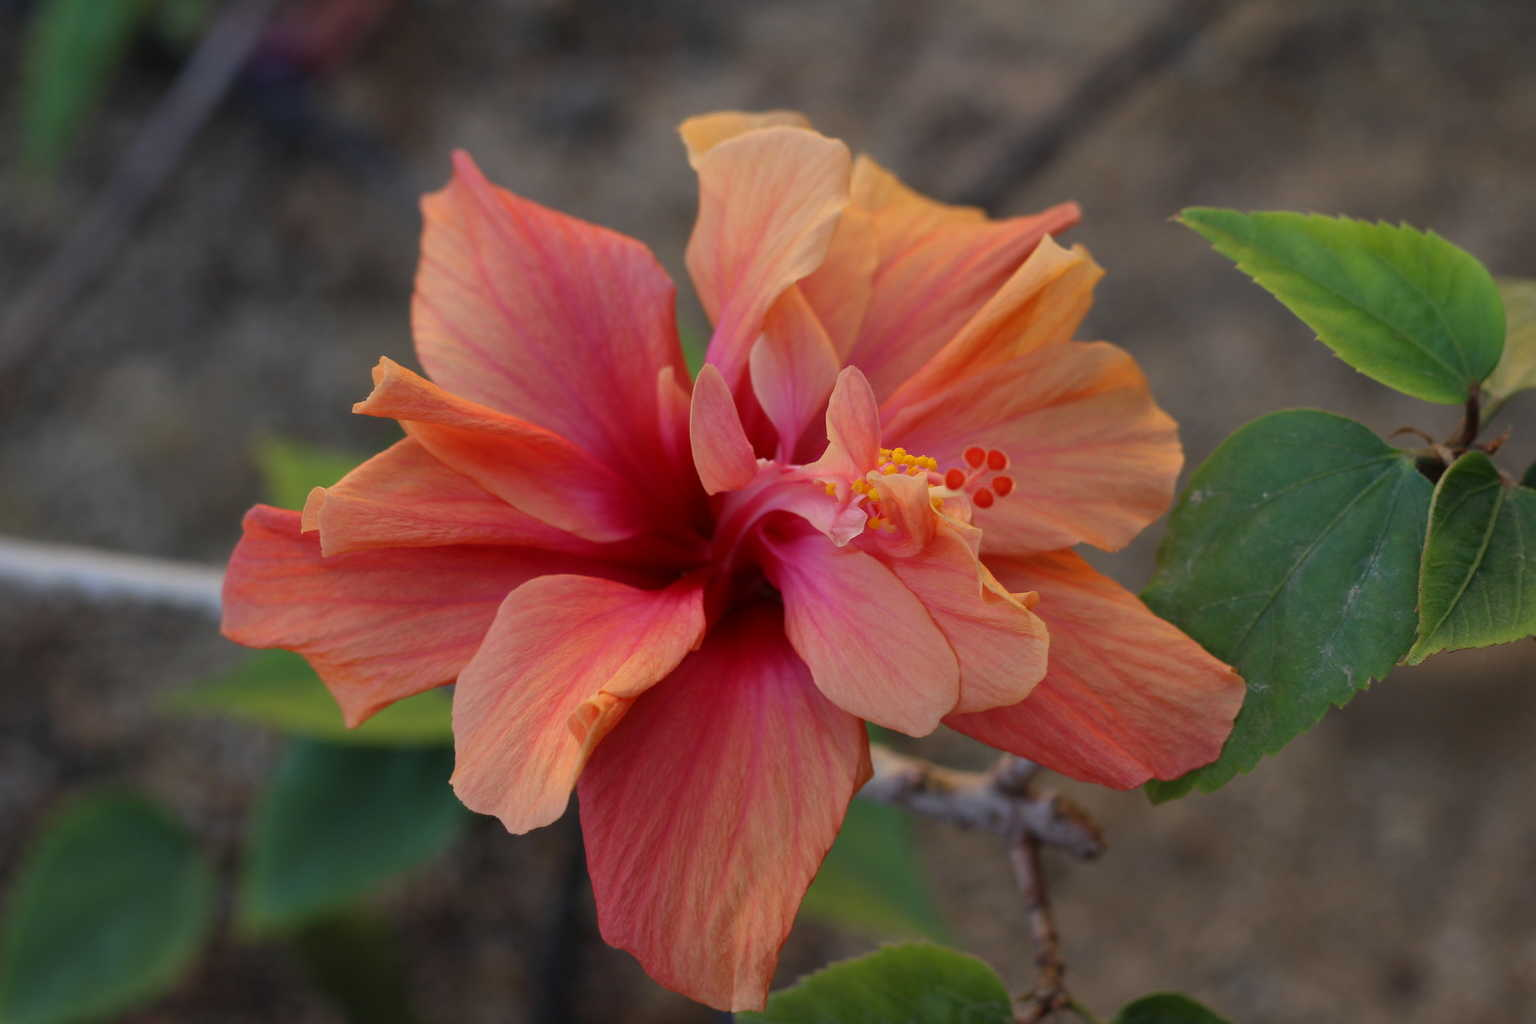 Flower shop near me hibiscus flower in spanish flower shop hibiscus flower in spanish the flowers are very beautiful here we provide a collections of various pictures of beautiful flowers charming izmirmasajfo